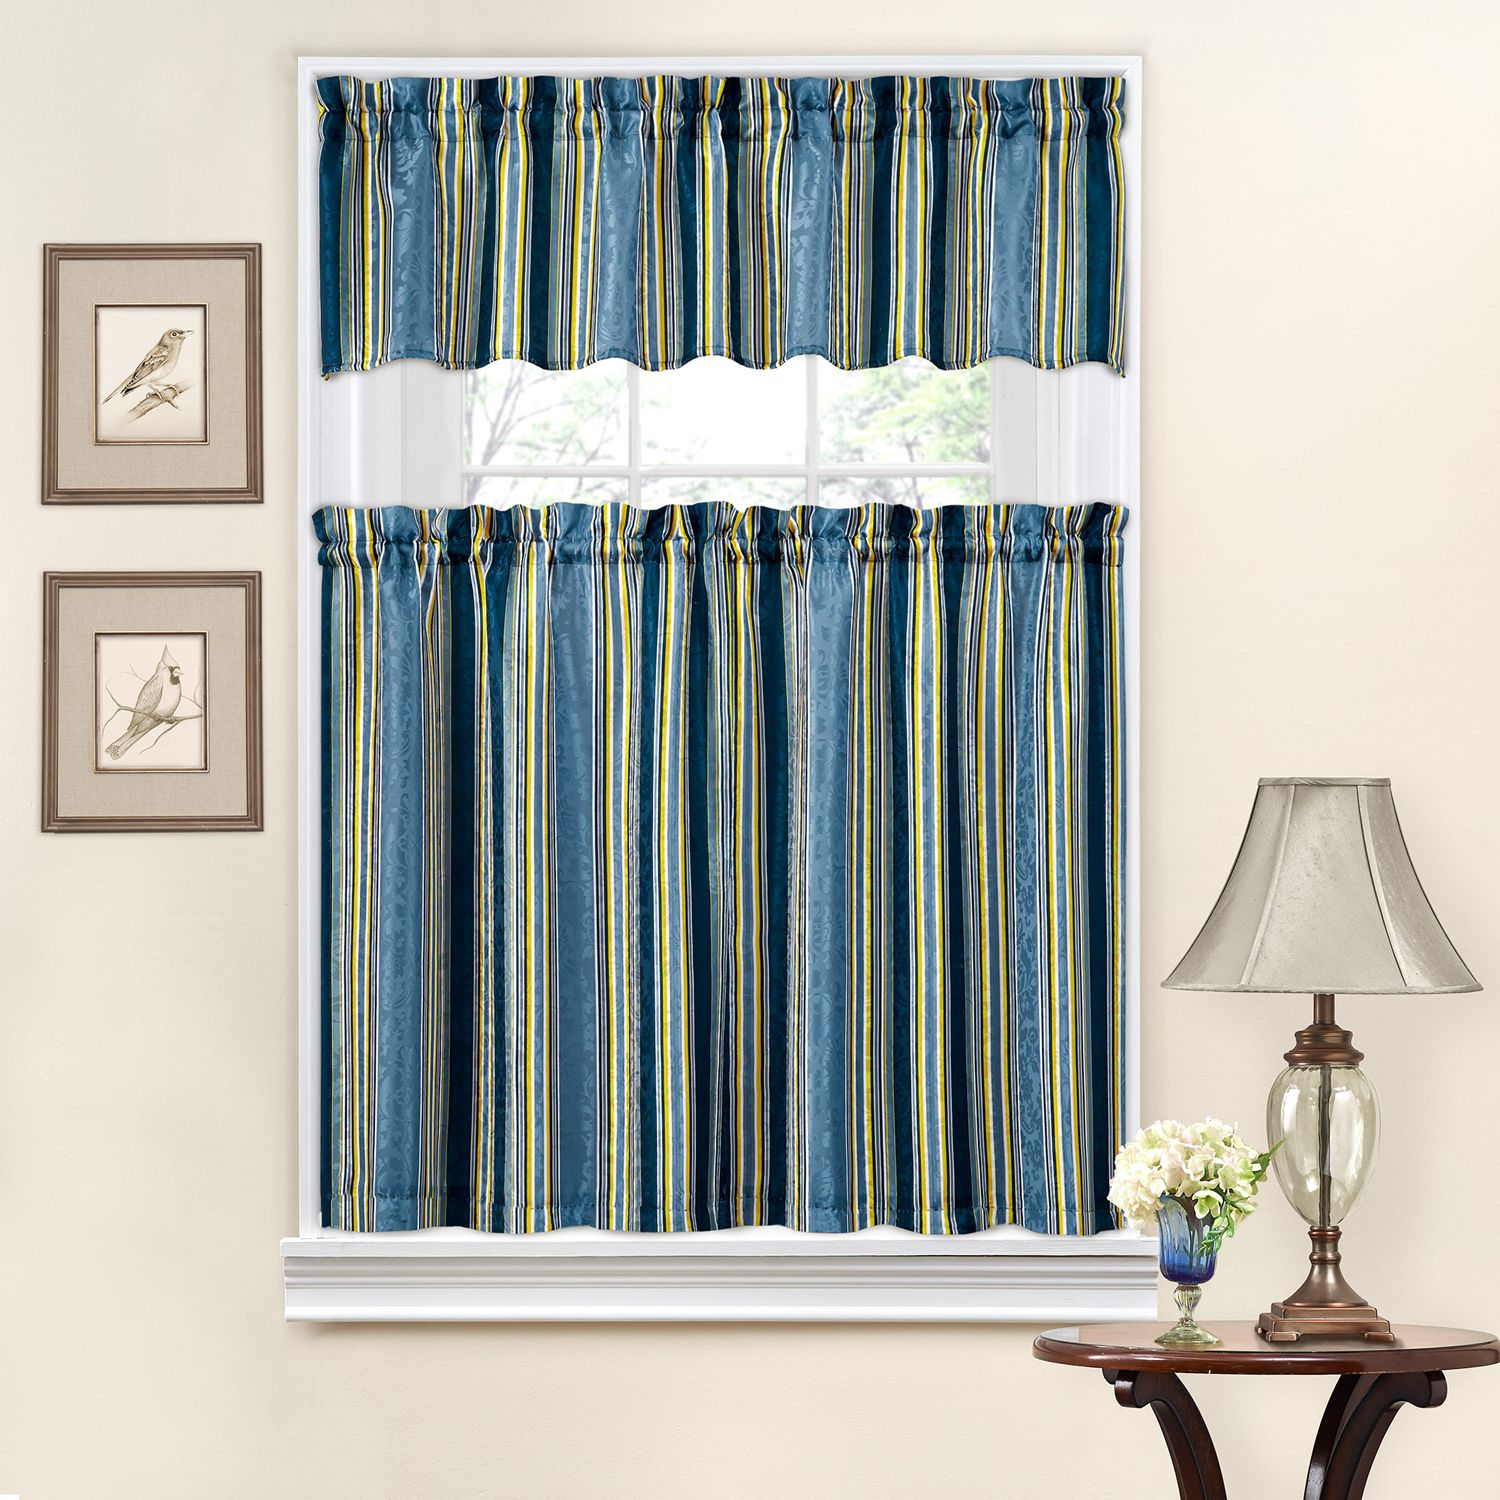 Traditions By Waverly Stripe Ensemble Tier U0026 Valance Kitchen Window Curtain  Set